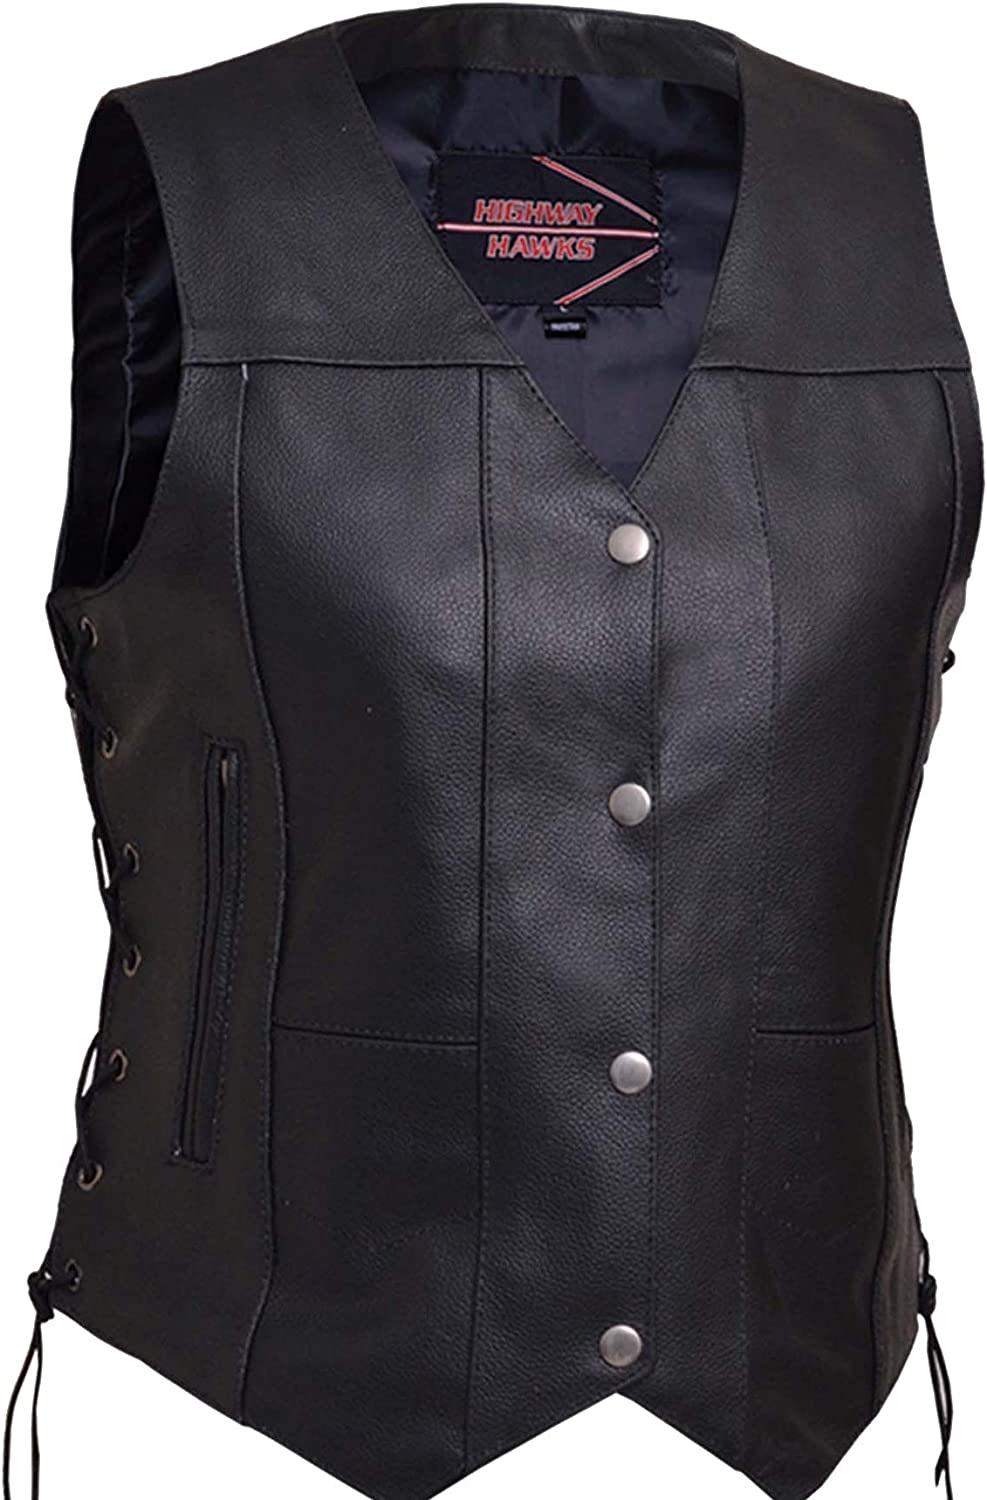 Womens Leather Motorcycle Vest With Concealed Carry Pockets and Side Laces